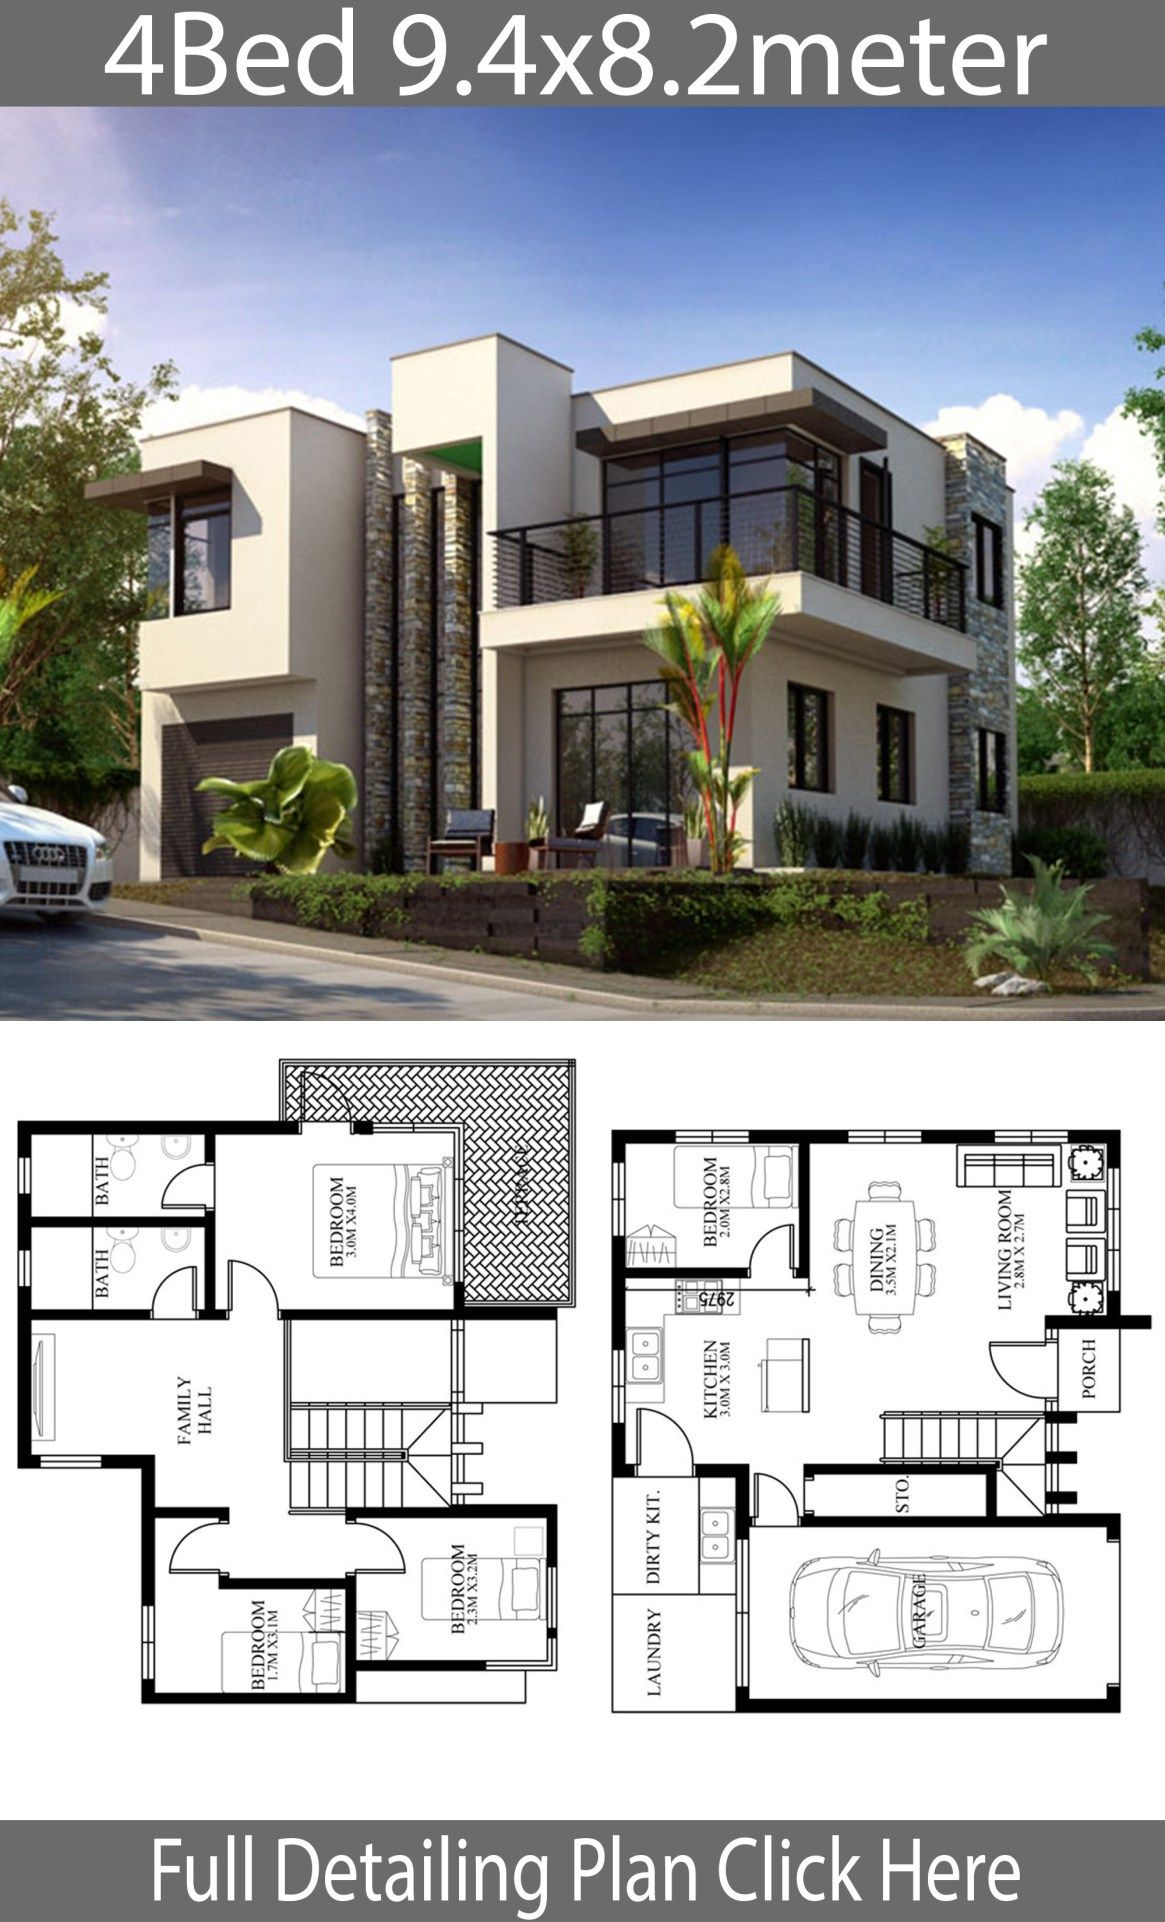 Small Home Design Plan 9 4x8 2m With 4 Bedrooms Architectural House Plans Duplex House Design Home Building Design